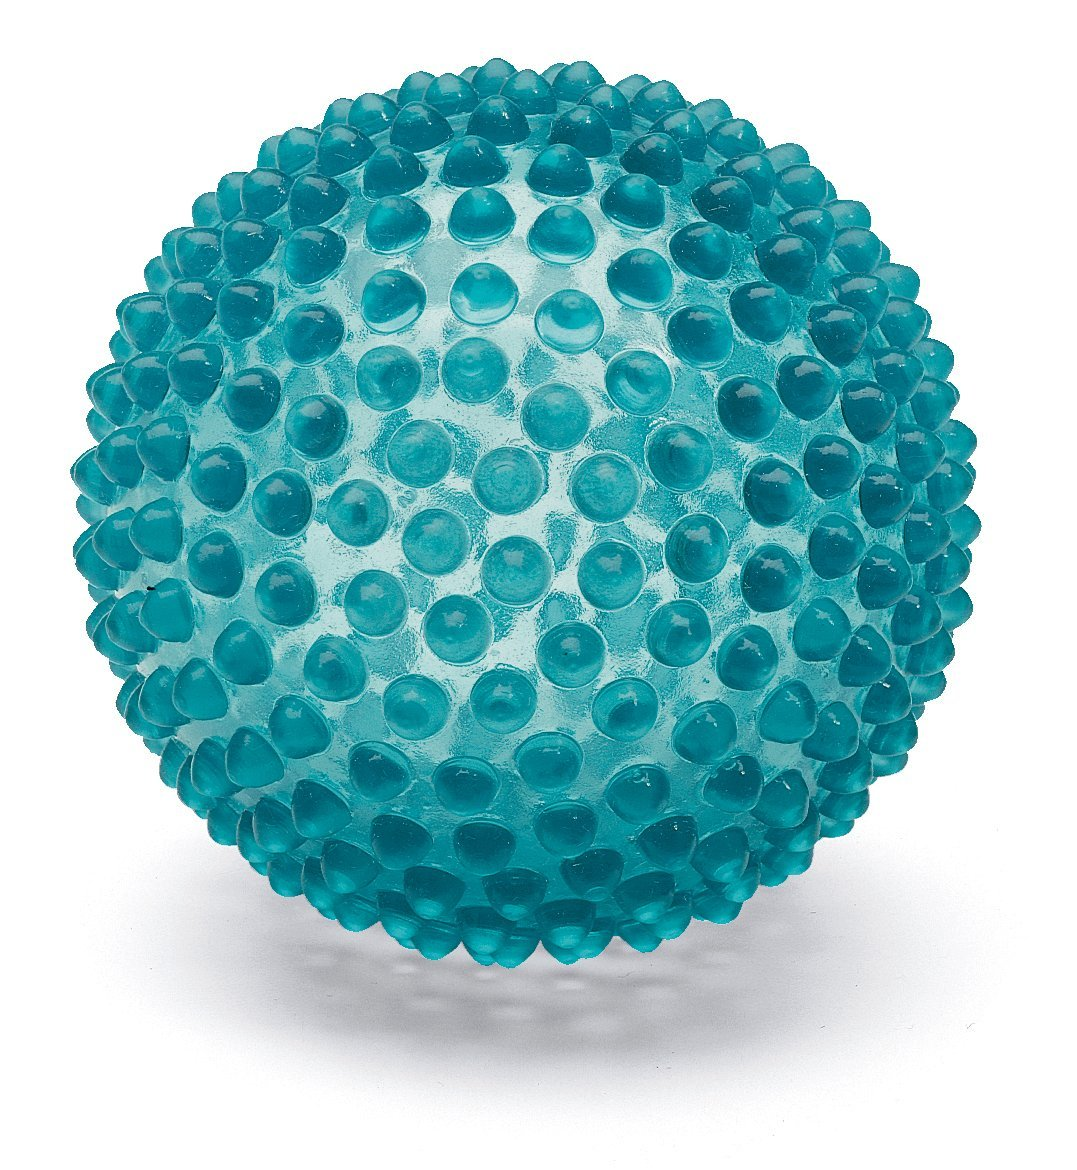 Discovery Toys TANGIBALL Squishy, Squeezy Scented Sensory Ball | Kid-Powered Learning | STEM Toy Early Childhood Development 12 Months and Up